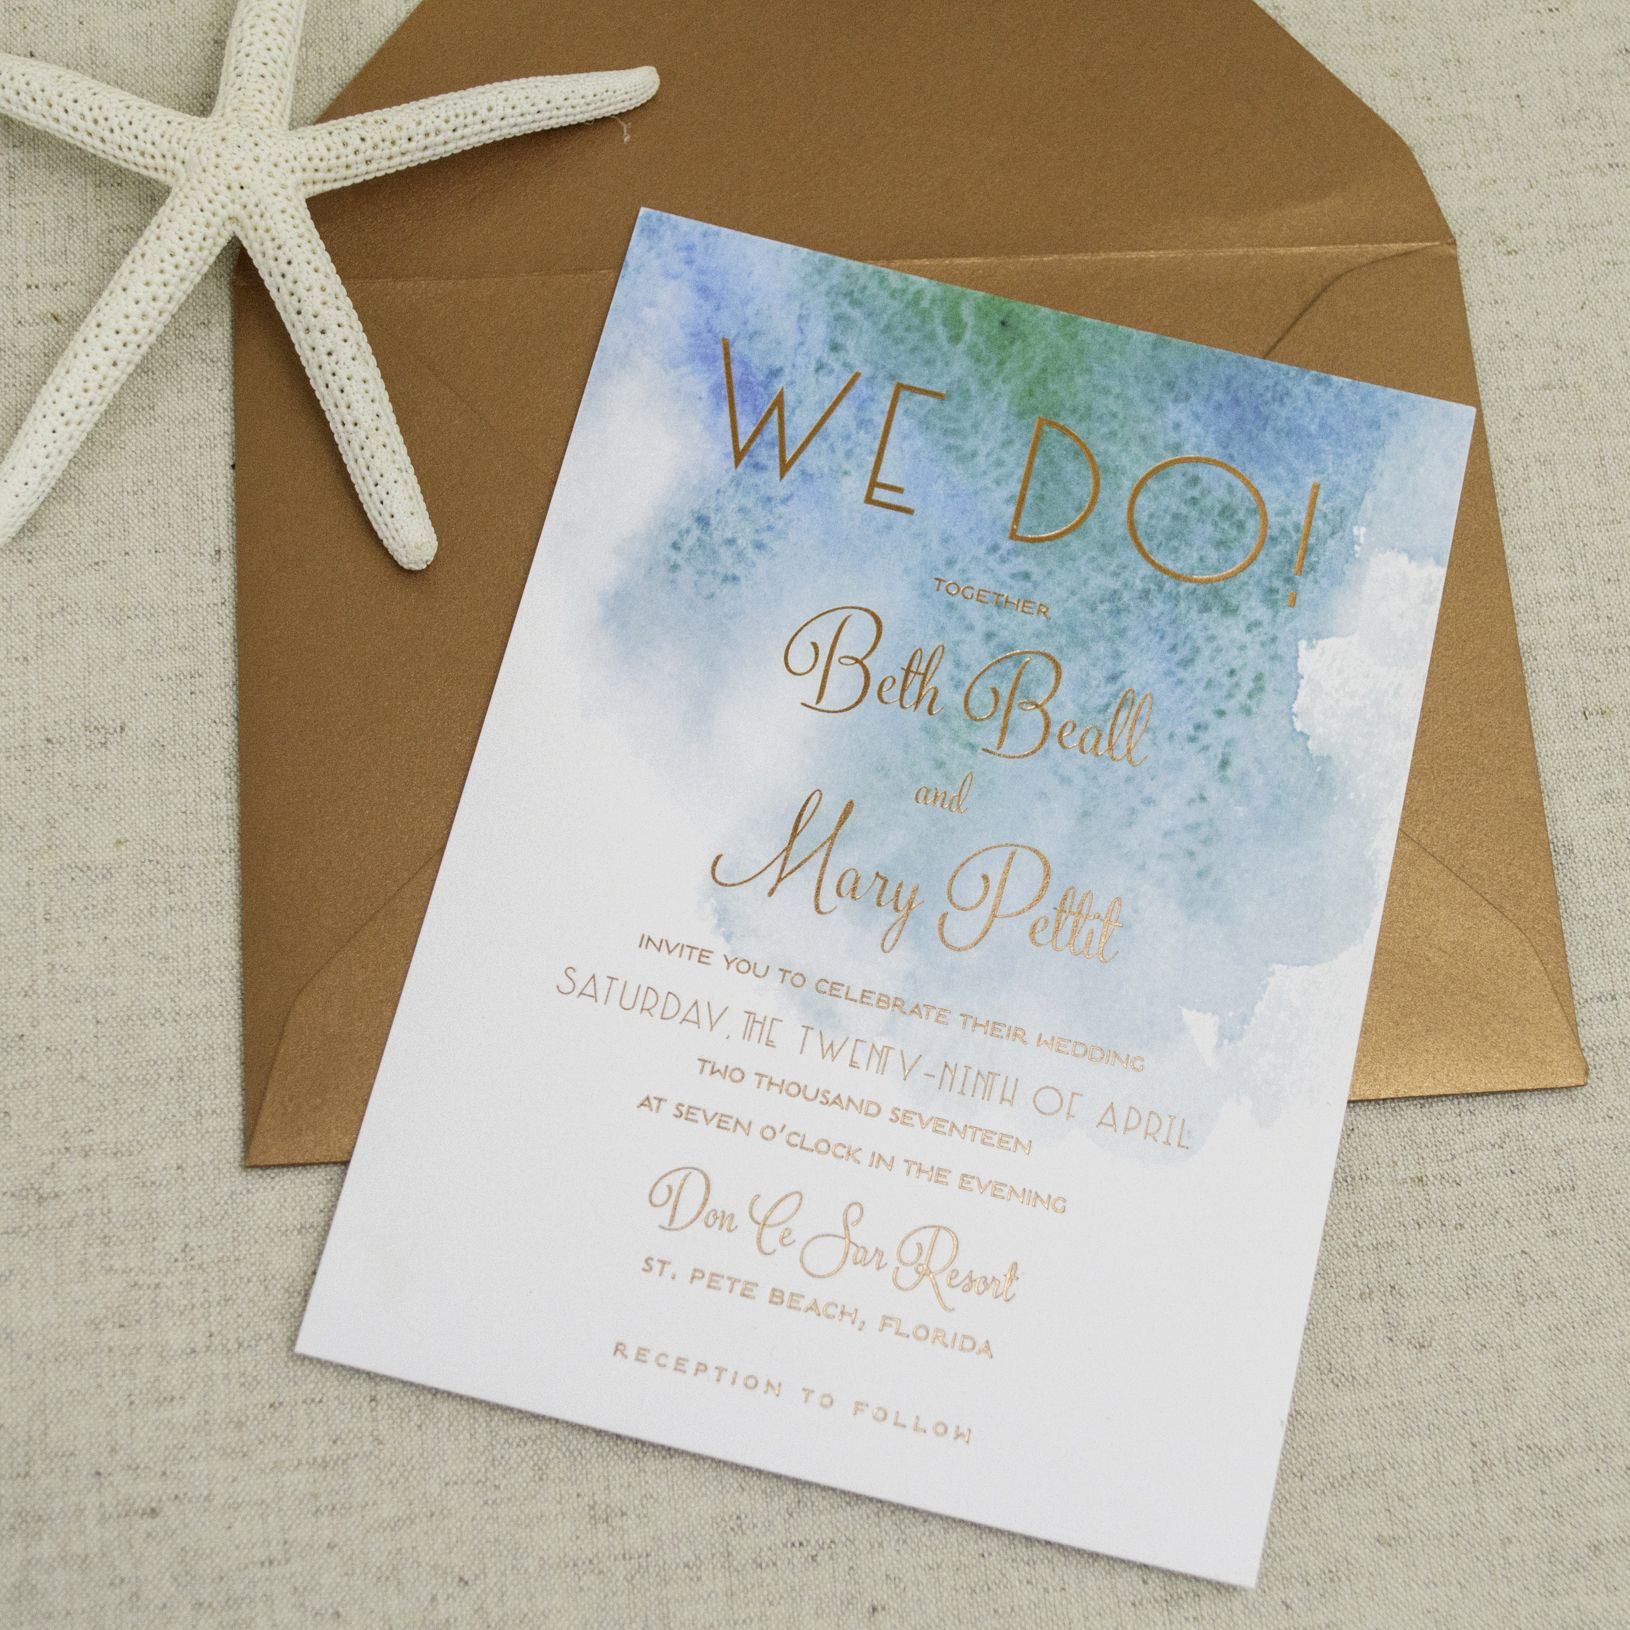 Modern Beach Themed Wedding Invitations - A&P Designs | Beach themed ...